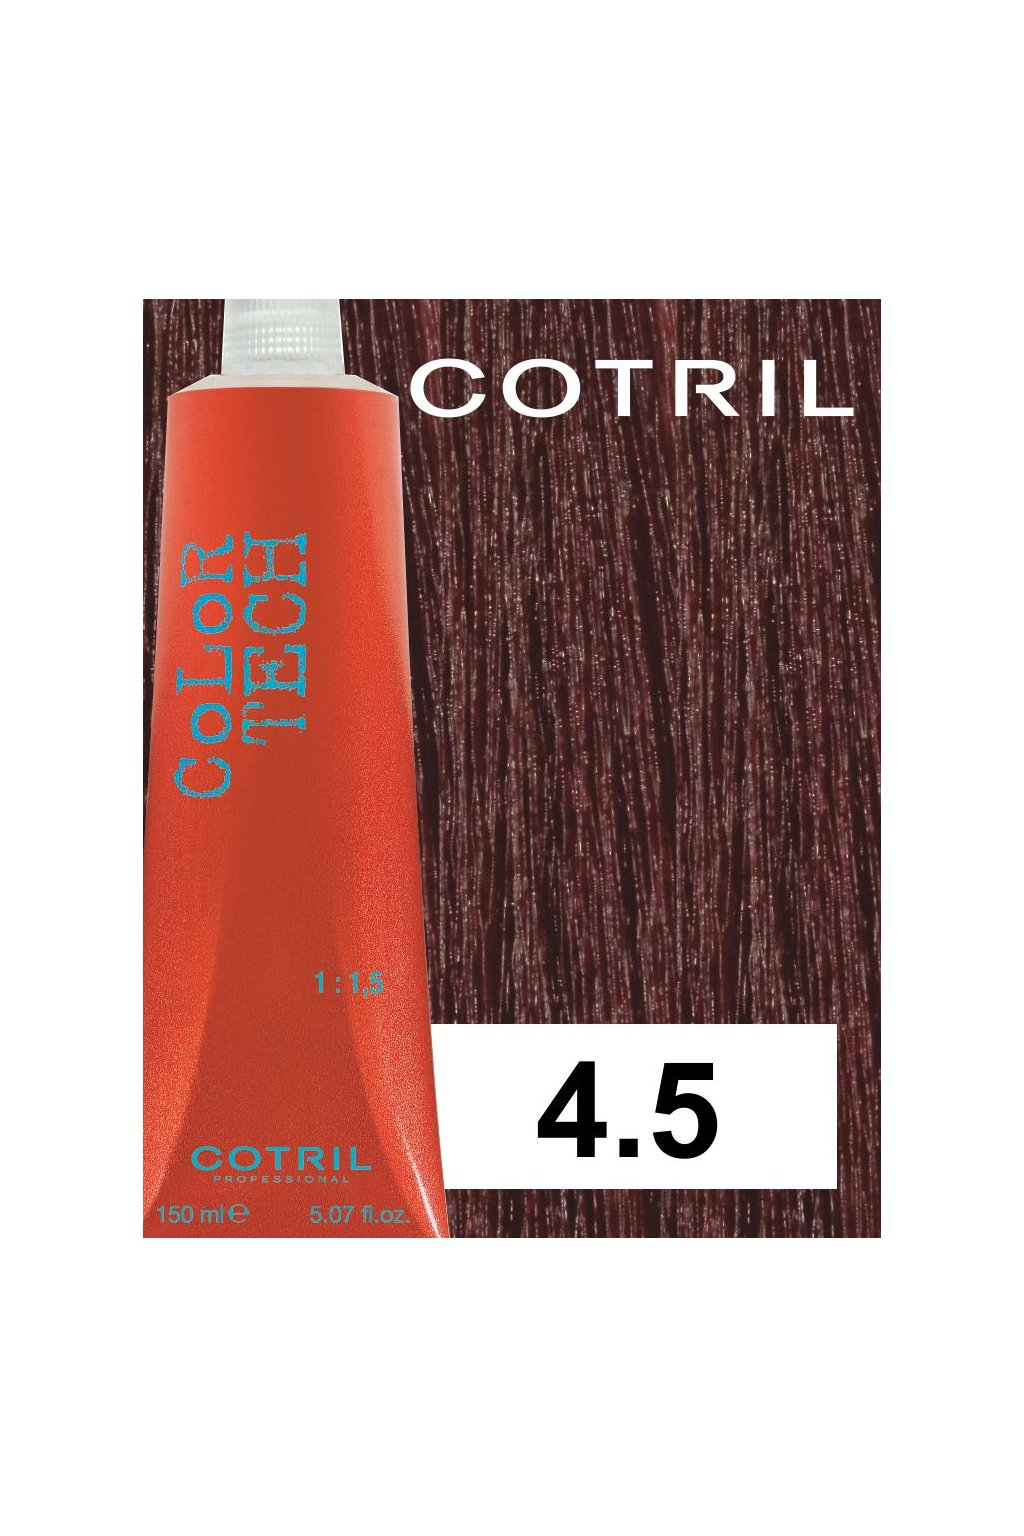 4 5 ct cotril